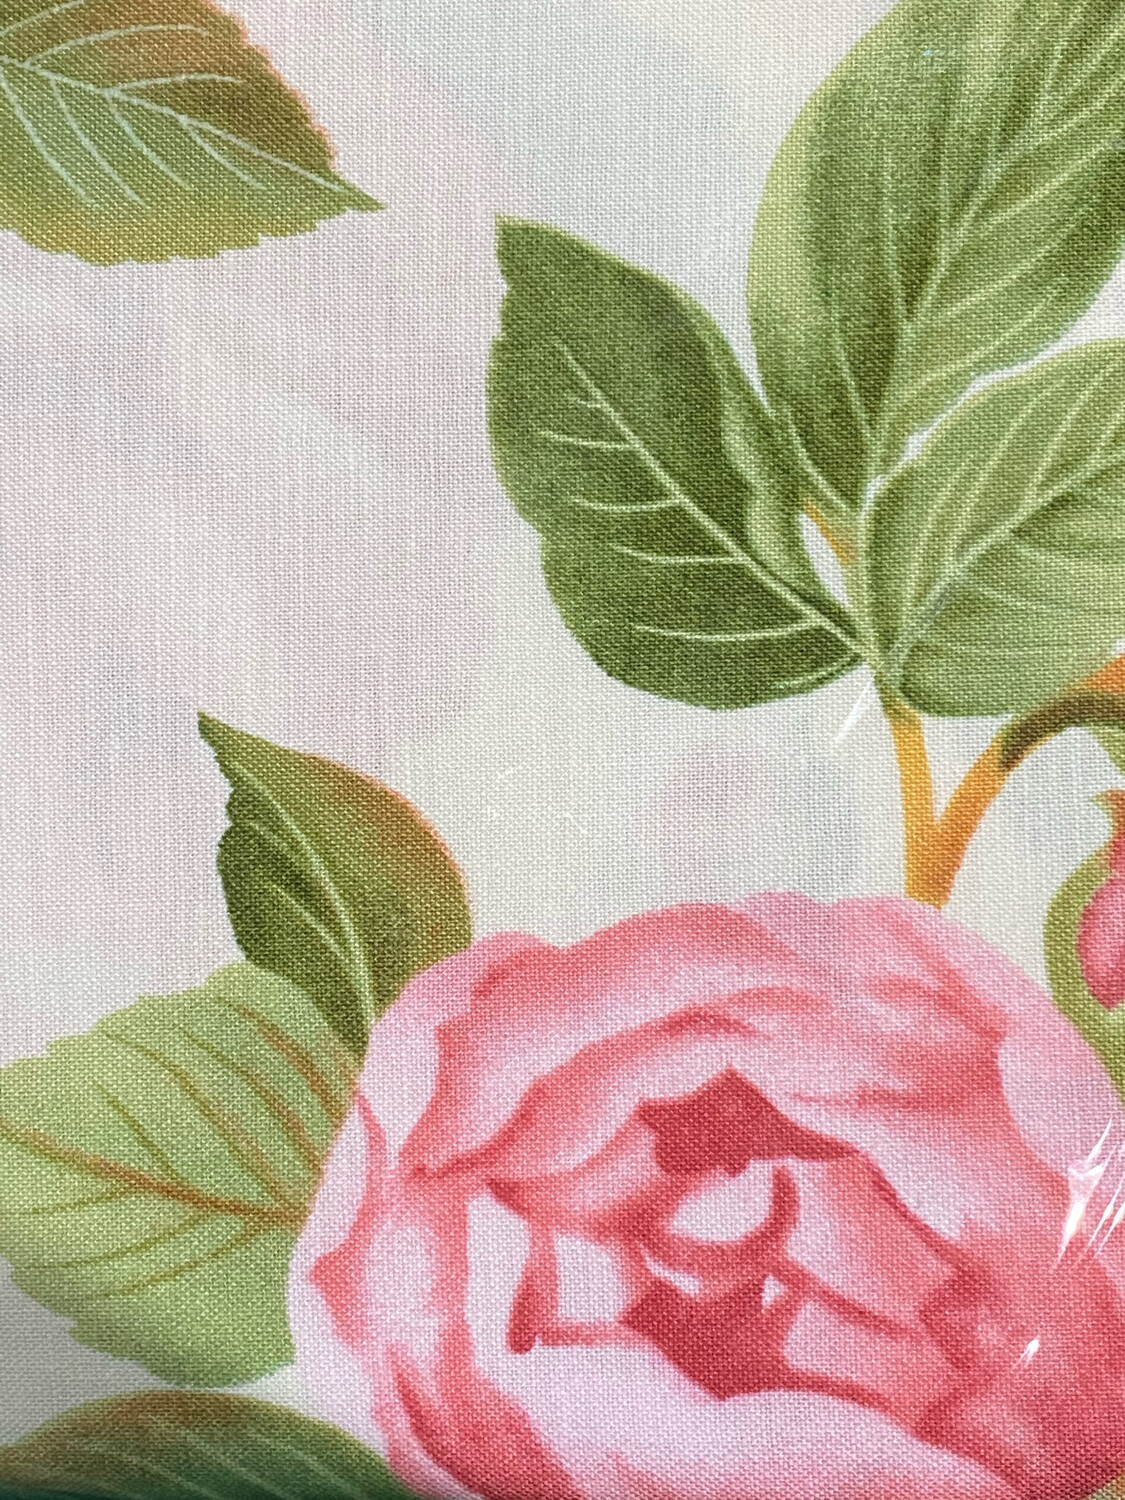 Pink Floral Print Fabric FQ